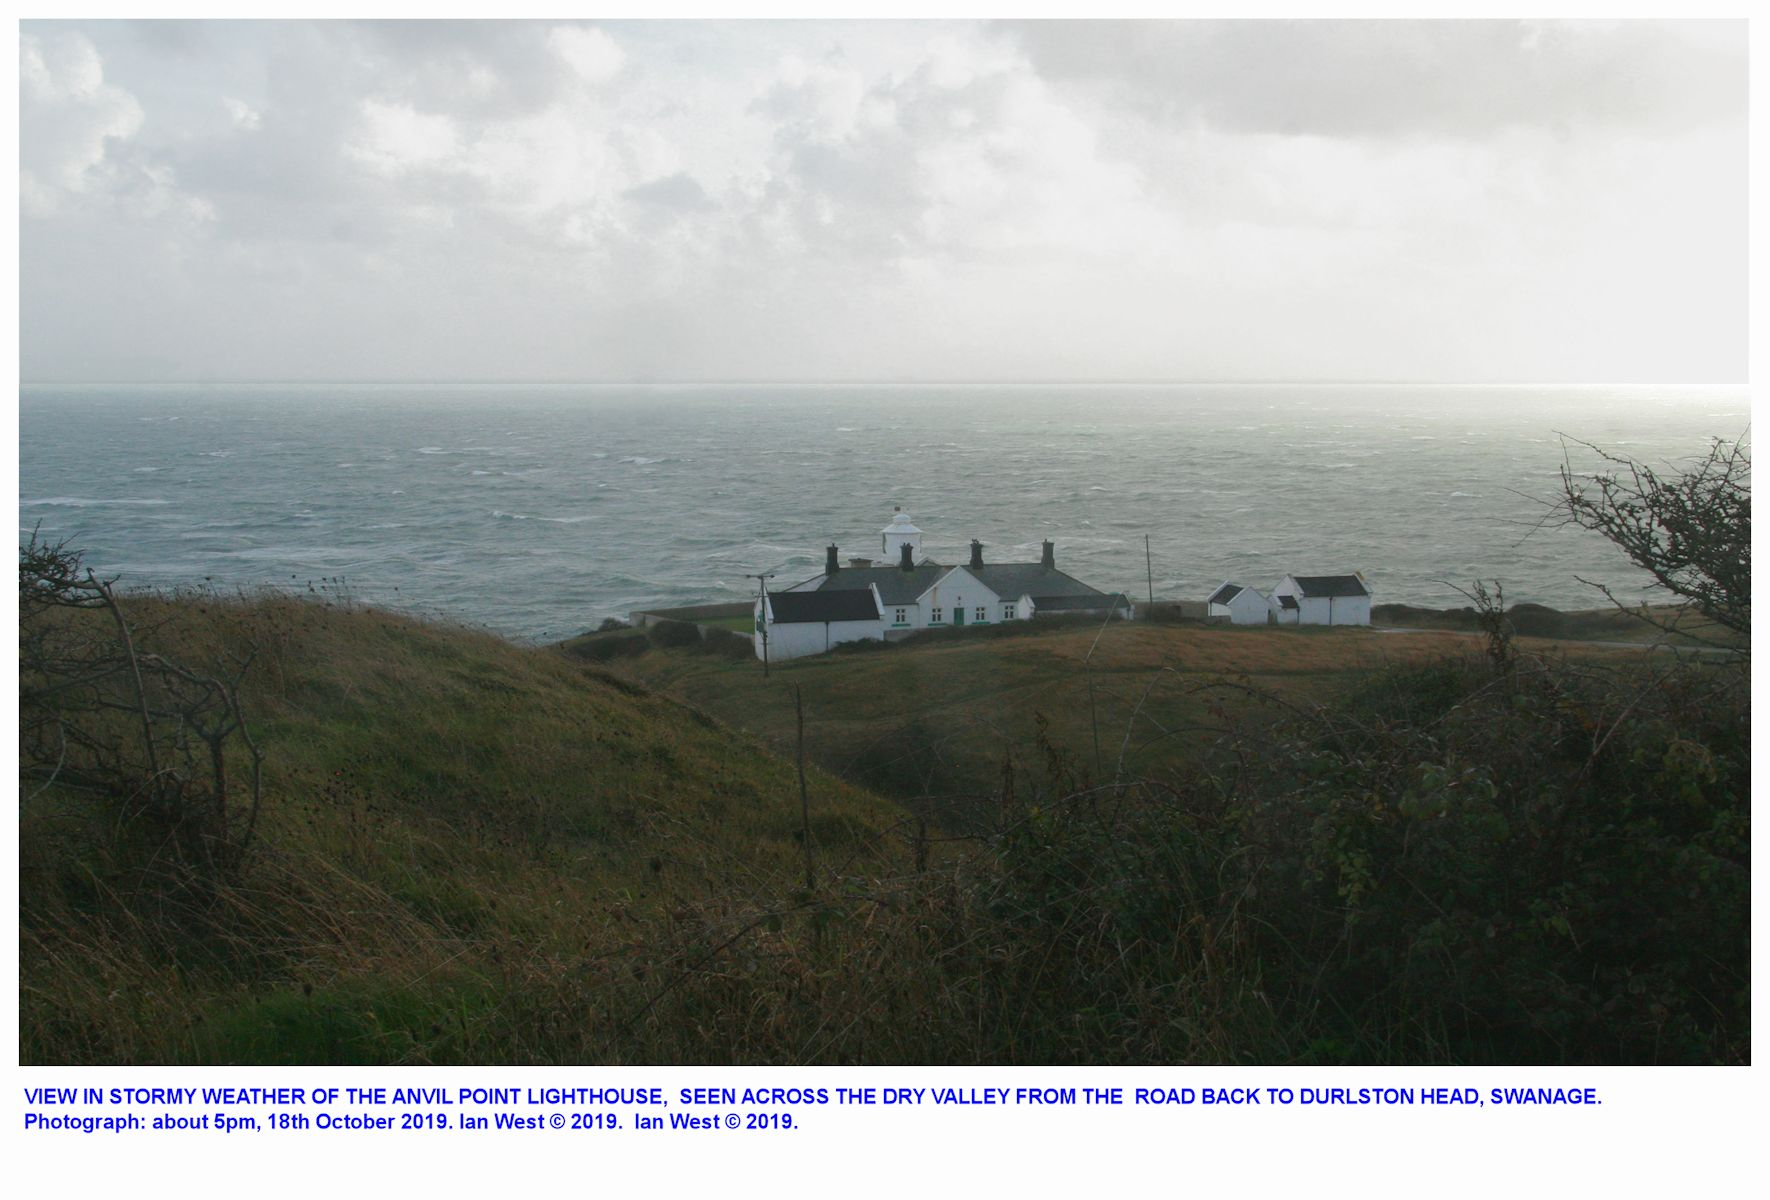 The location of the Anvil Point lighthouse, as seen from the narrow road heading back to Durlston Head, stormy weather, 18th October 2019